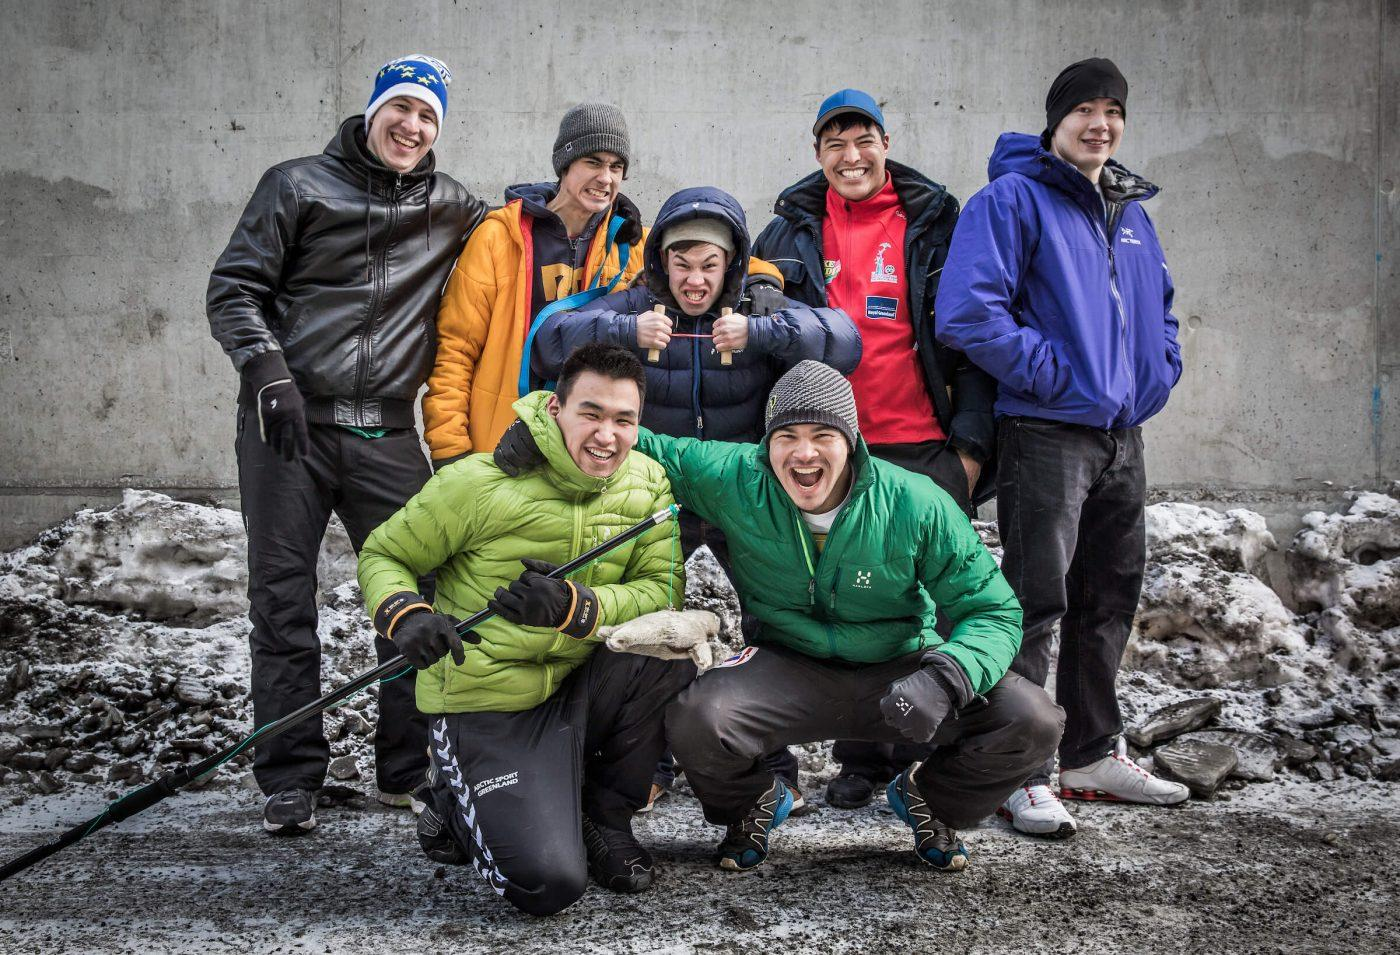 A group of Inuit Games athletes from Nuuk ready for the Arctic Winter Games in Greenland. By Mads Pihl